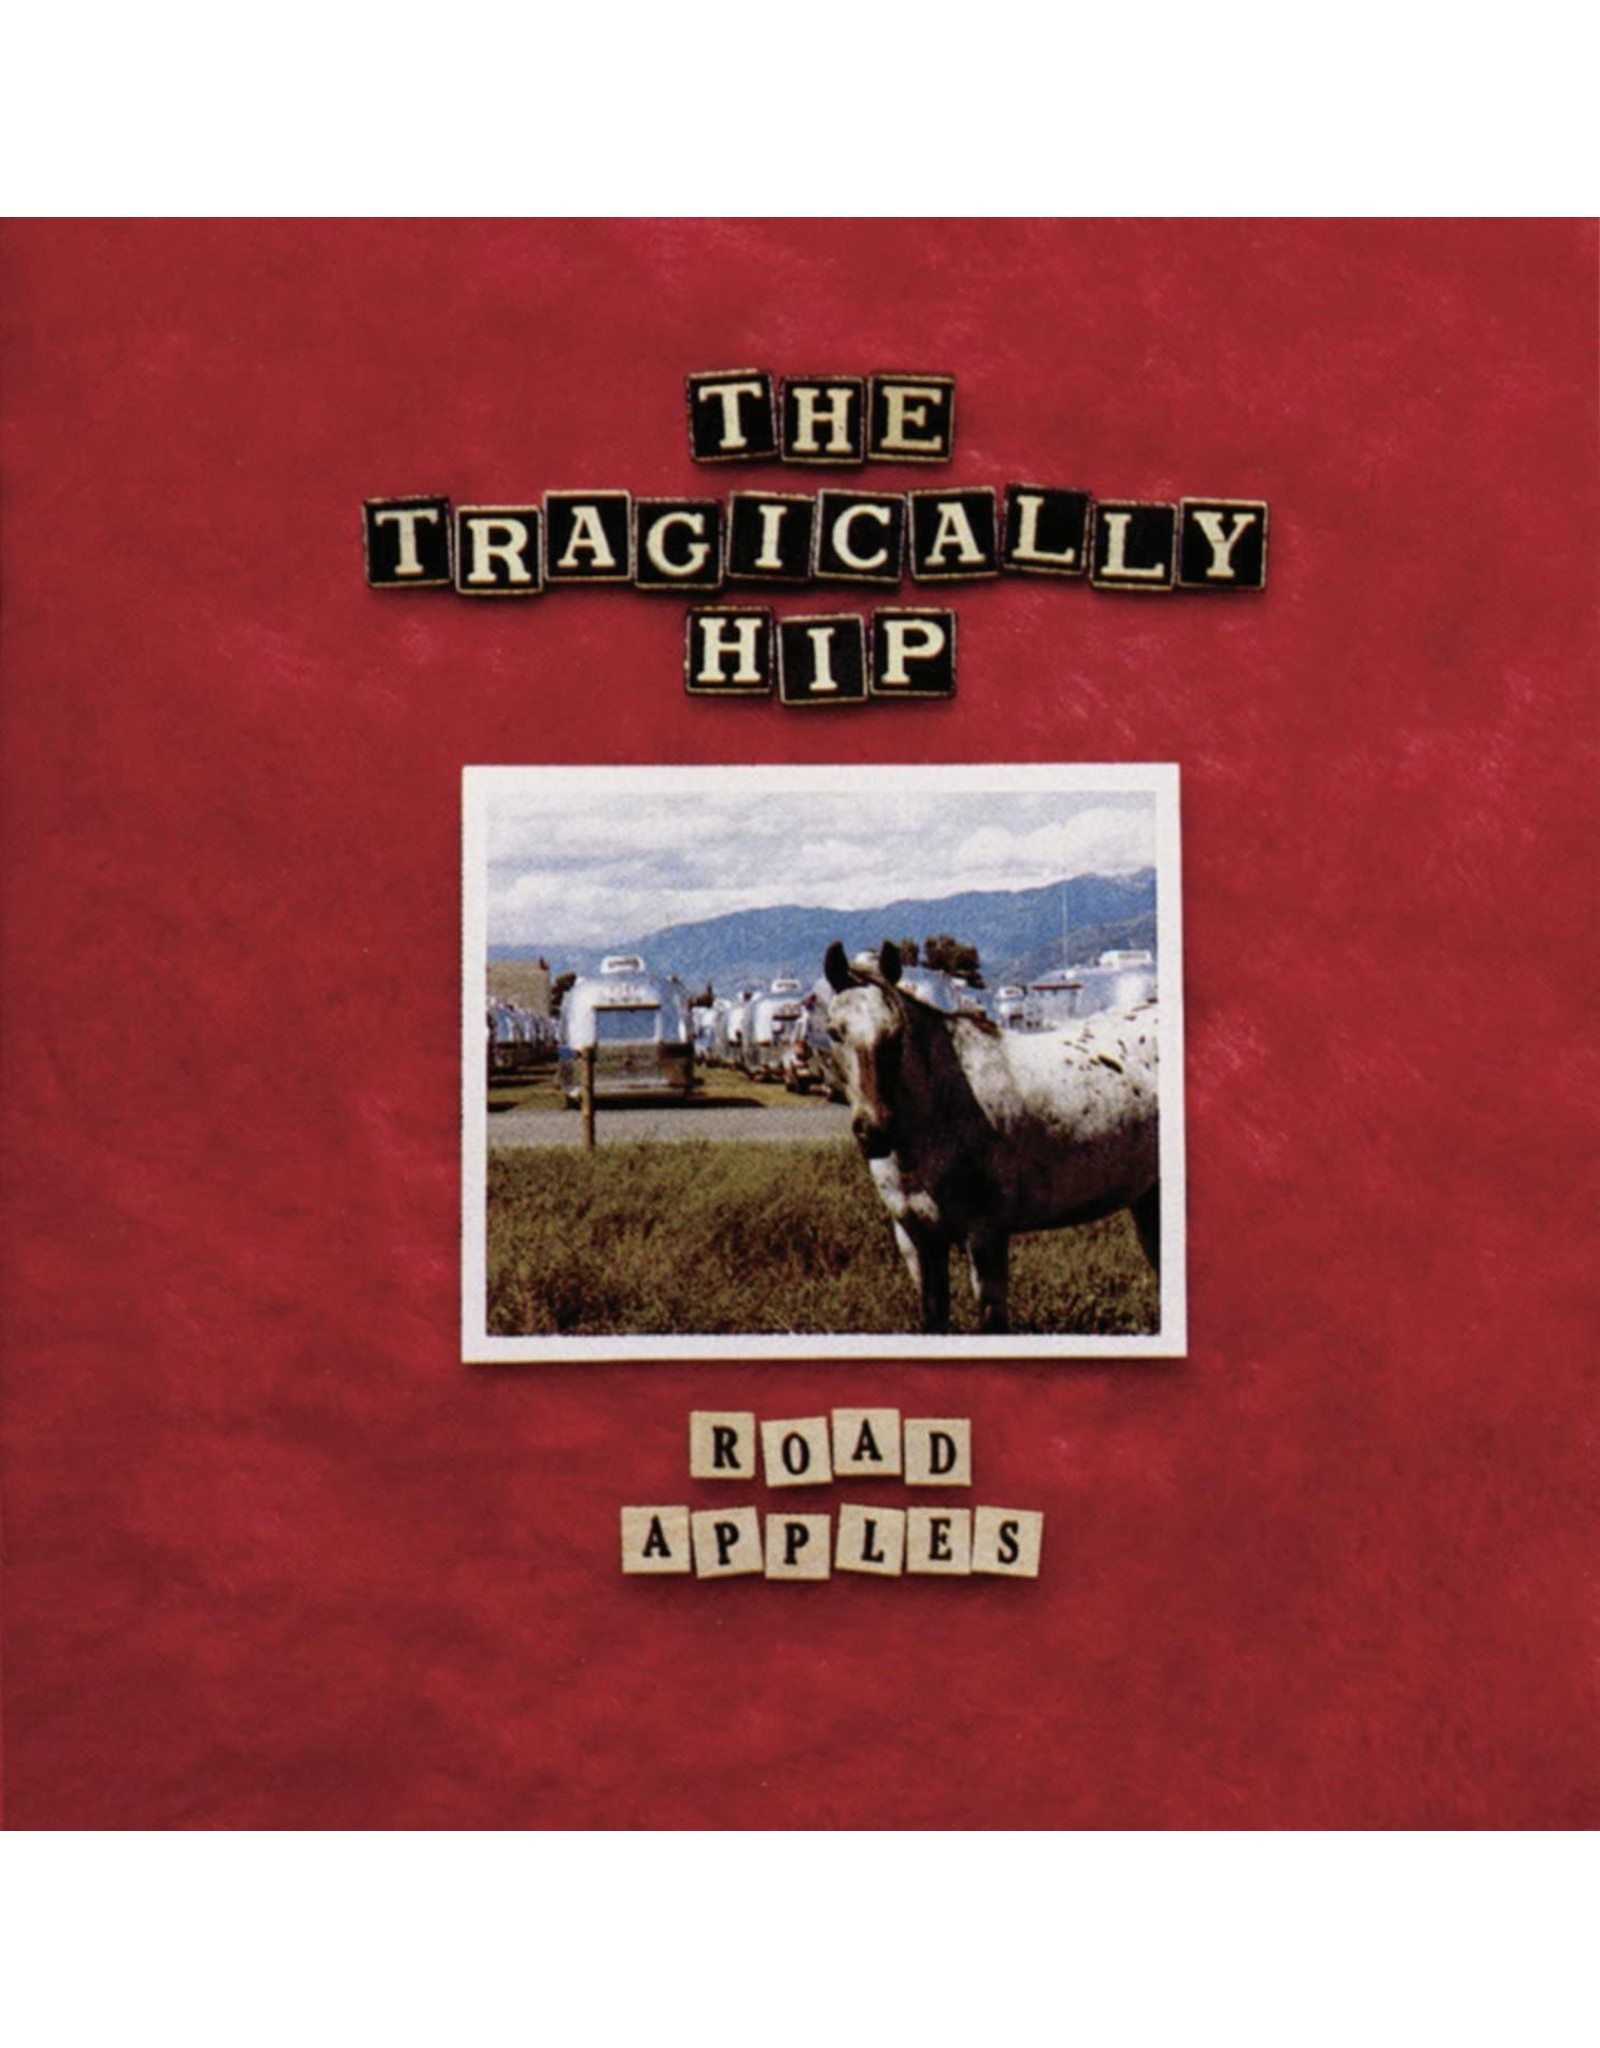 Tragically Hip - Road Apples LP